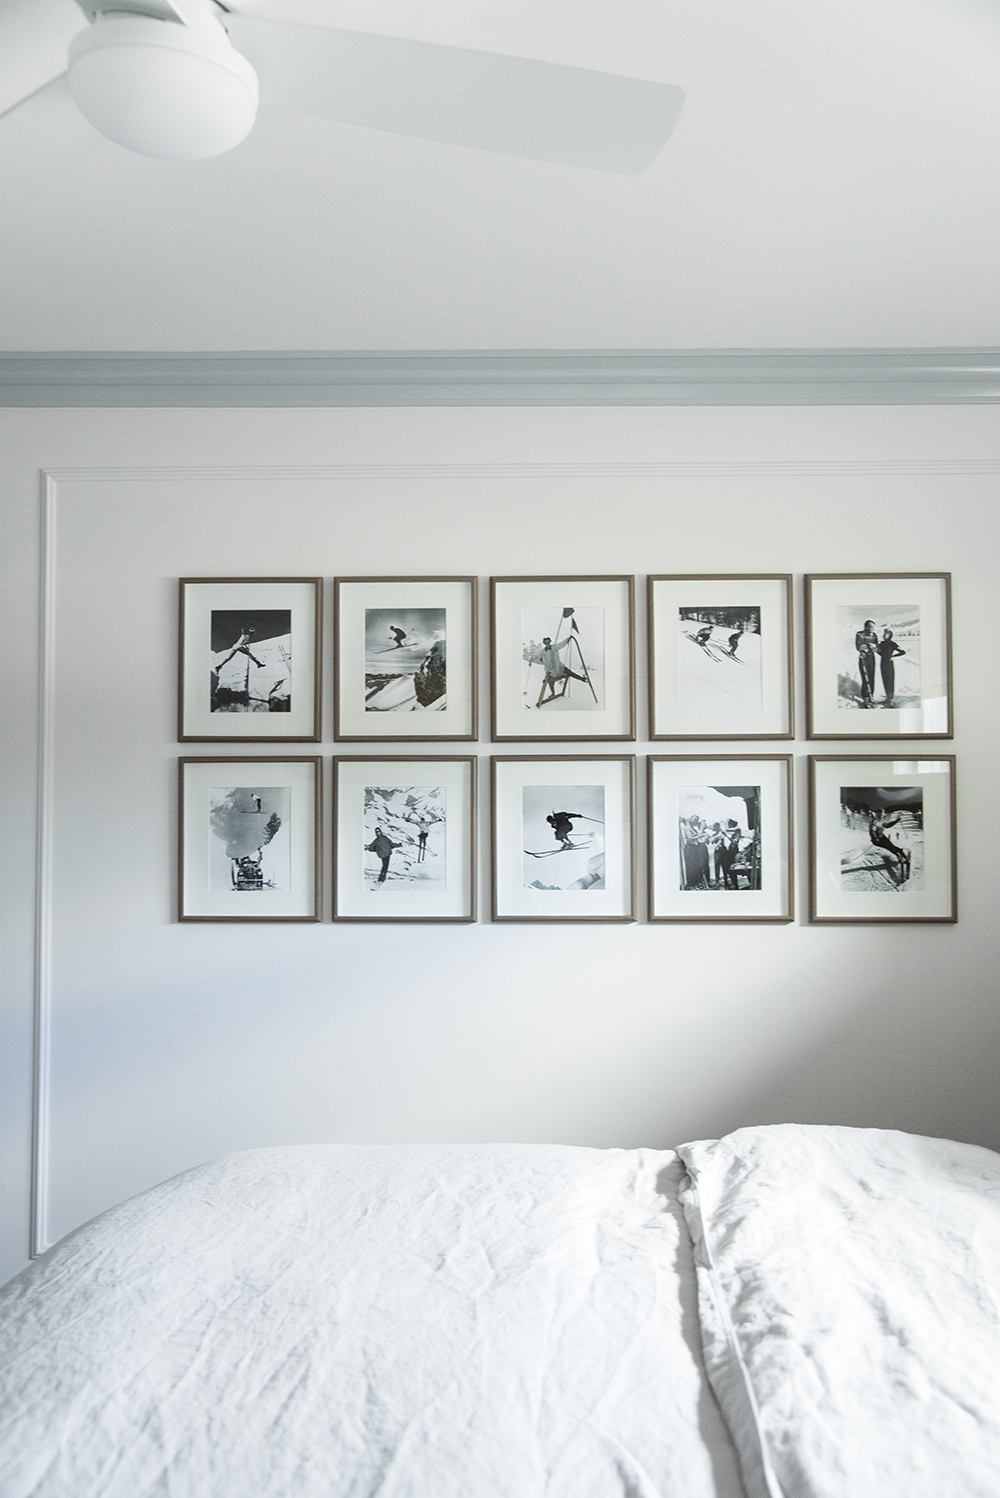 d1c639a02a19 Your Guide to Creating the Perfect Grid Gallery Wall - Room for Tuesday